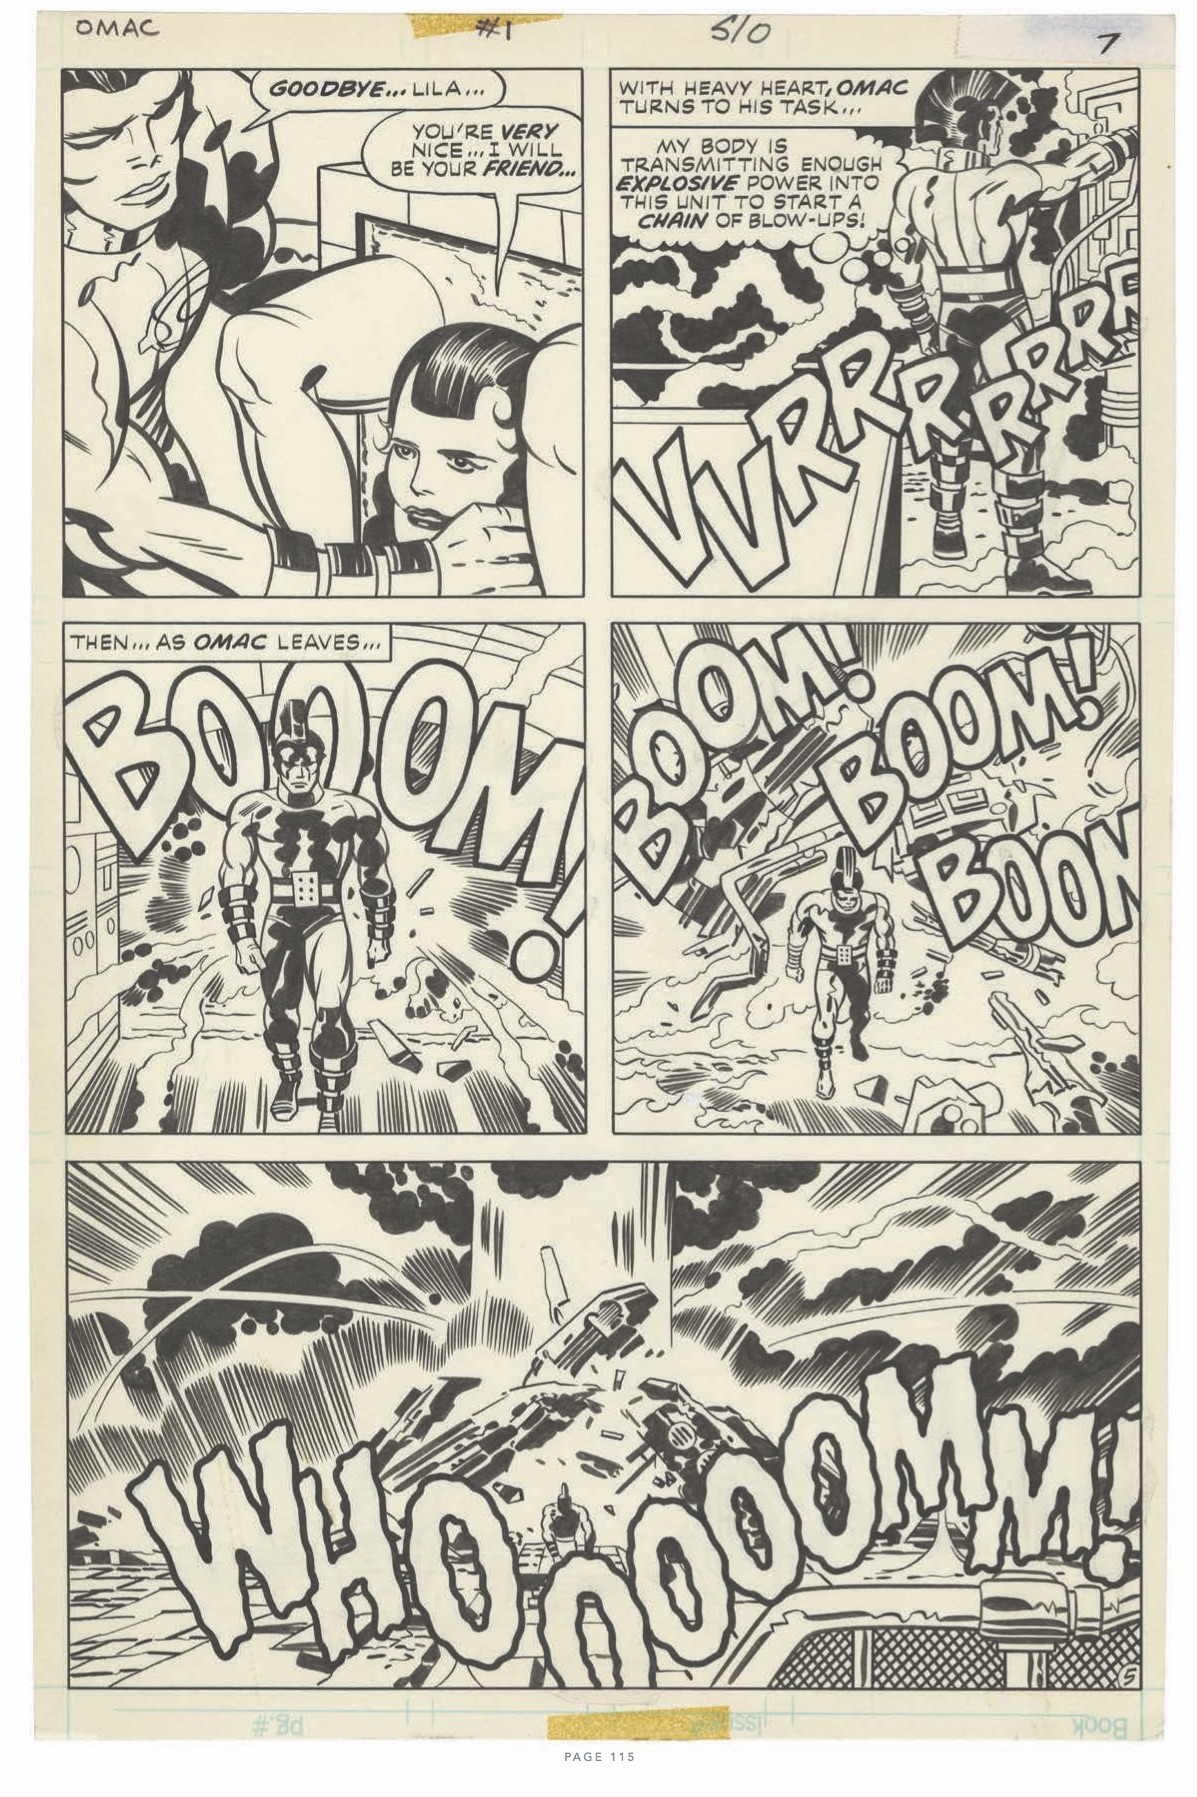 jackkirby_pencils_inks-loomacink